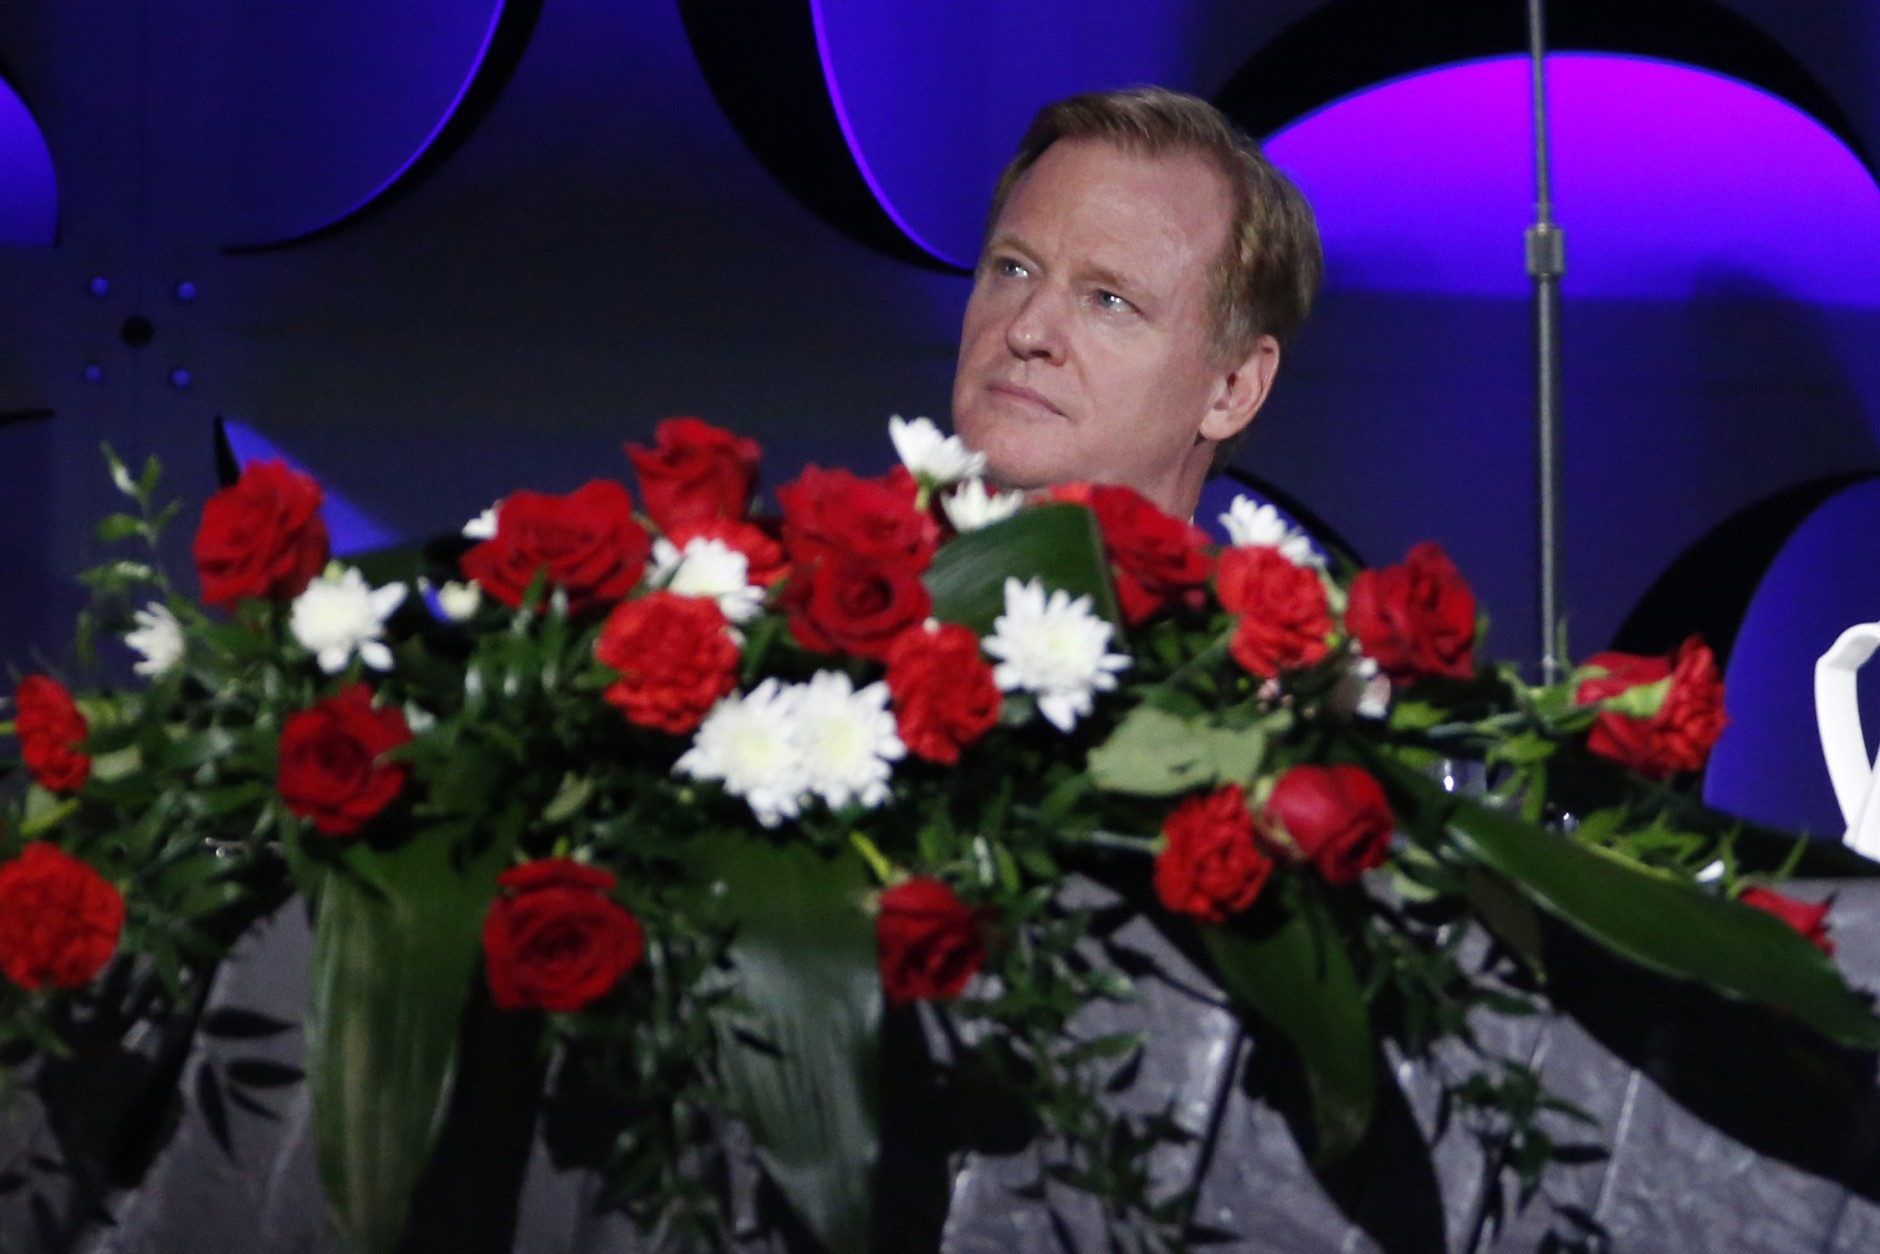 National Football League commissioner Roger Goodell attends the Pro Football Hall of Fame Gold Jacket Ceremony in Canton, Ohio, Thursday, Aug. 6, 2015. (AP Photo/Gene J. Puskar)